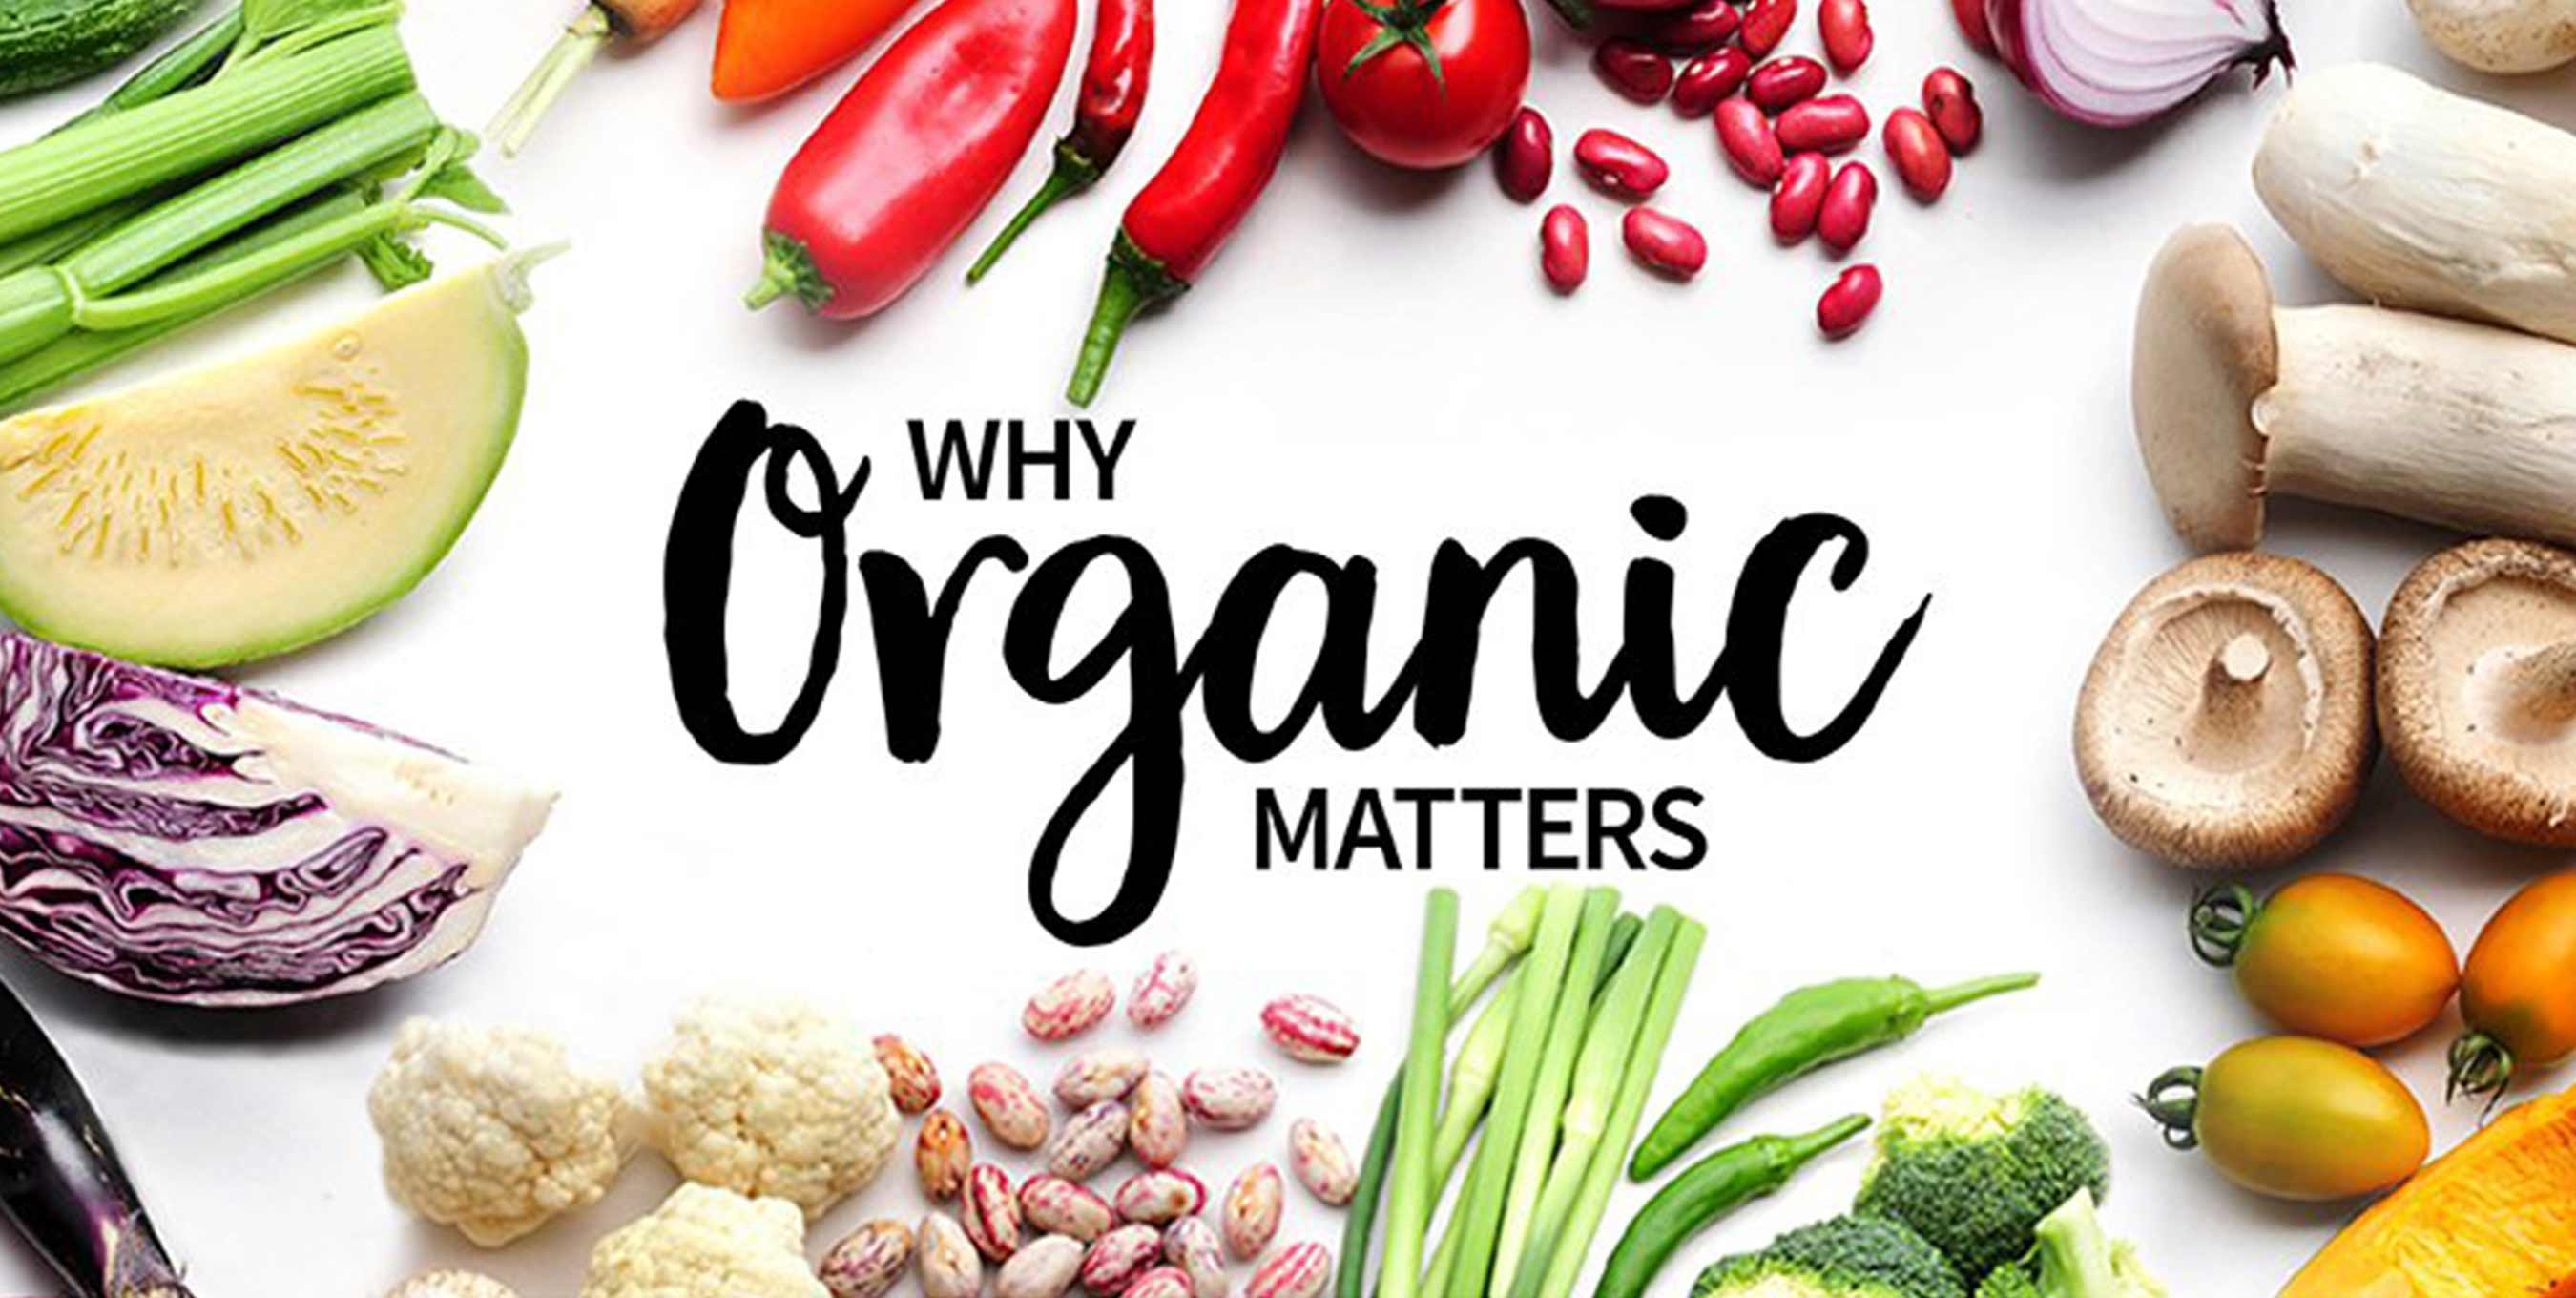 Why Buying Organic Is A Really Big Deal If You Care About Animal Welfare